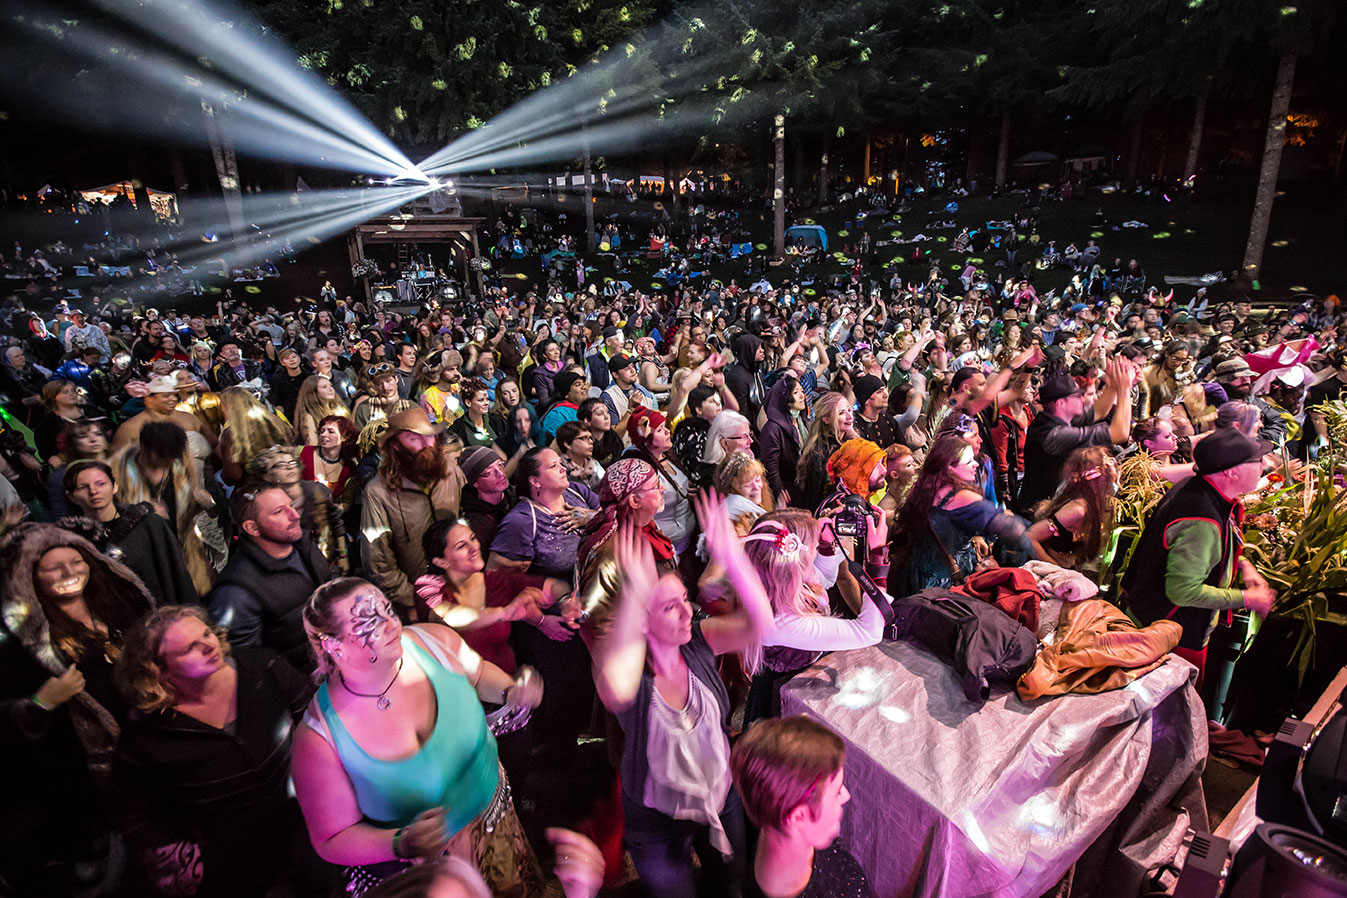 ABOUT THE EVENT – Faerieworlds Music and Arts Festival